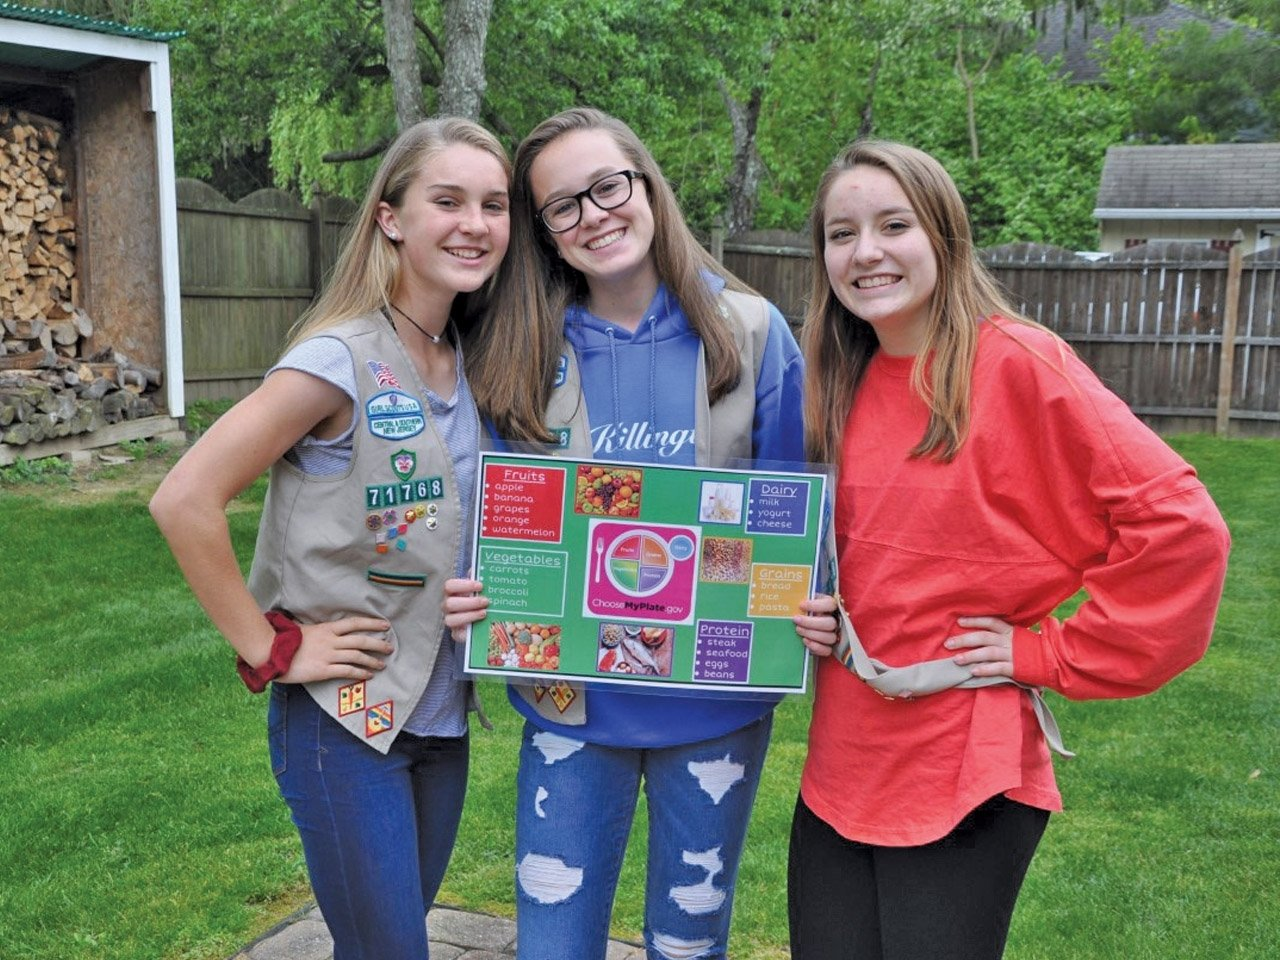 10 Fashionable Girl Scout Silver Award Project Ideas lawrence girl scouts teach the art of healthy food to earn silver award 1 2020